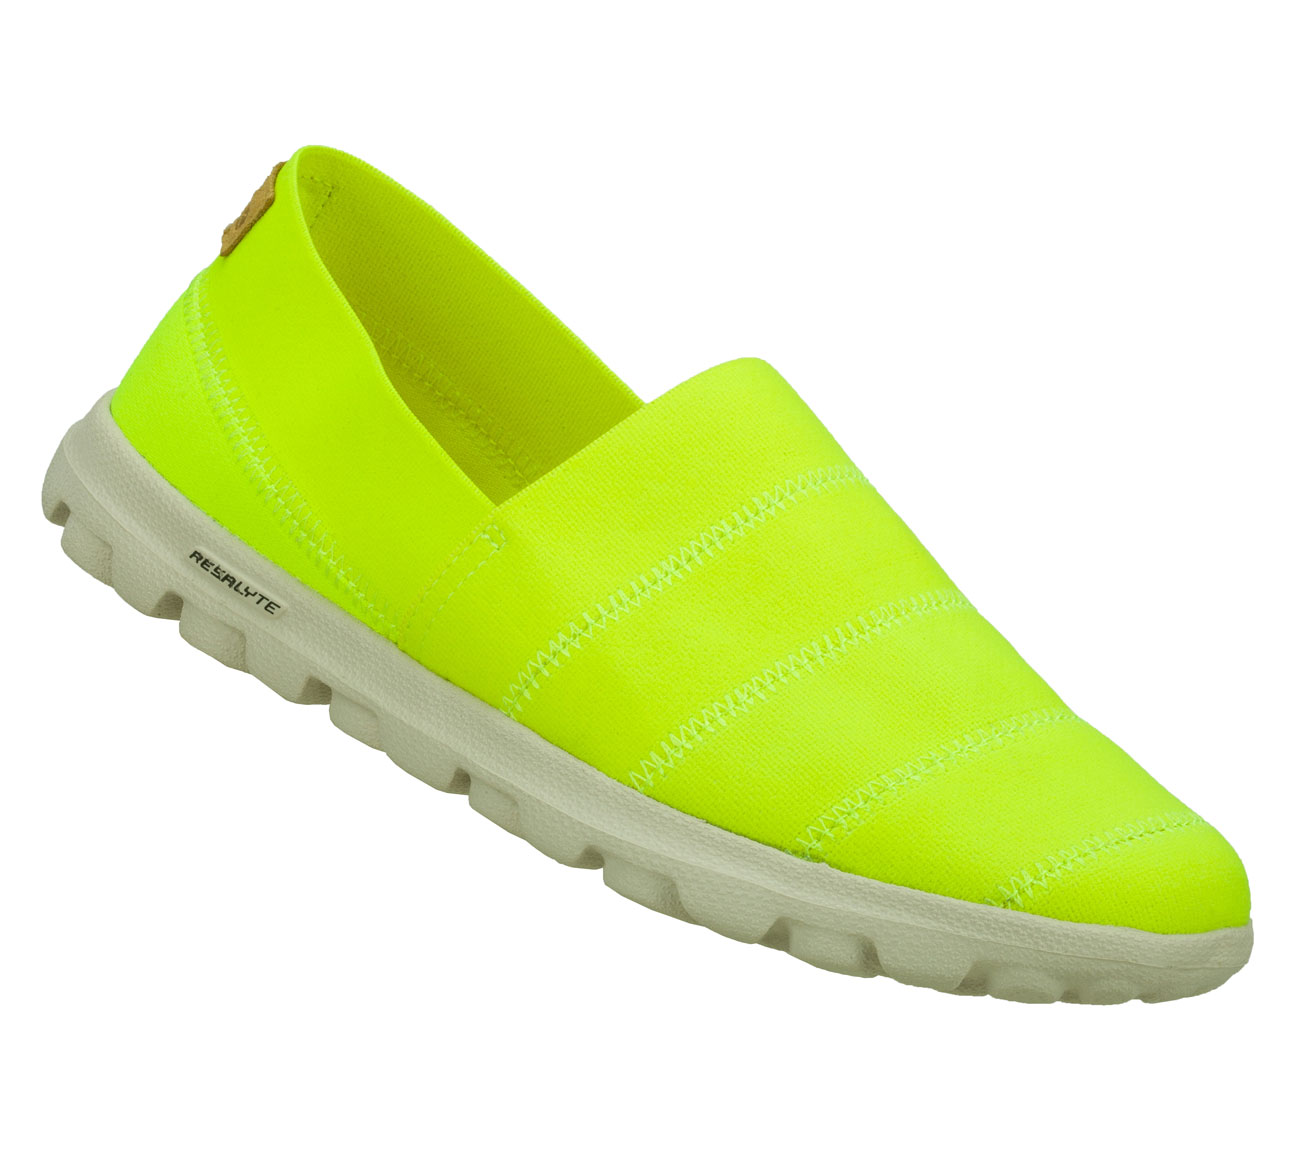 Women's Skechers GOwalk - Oasis. More views (mouse over to view):